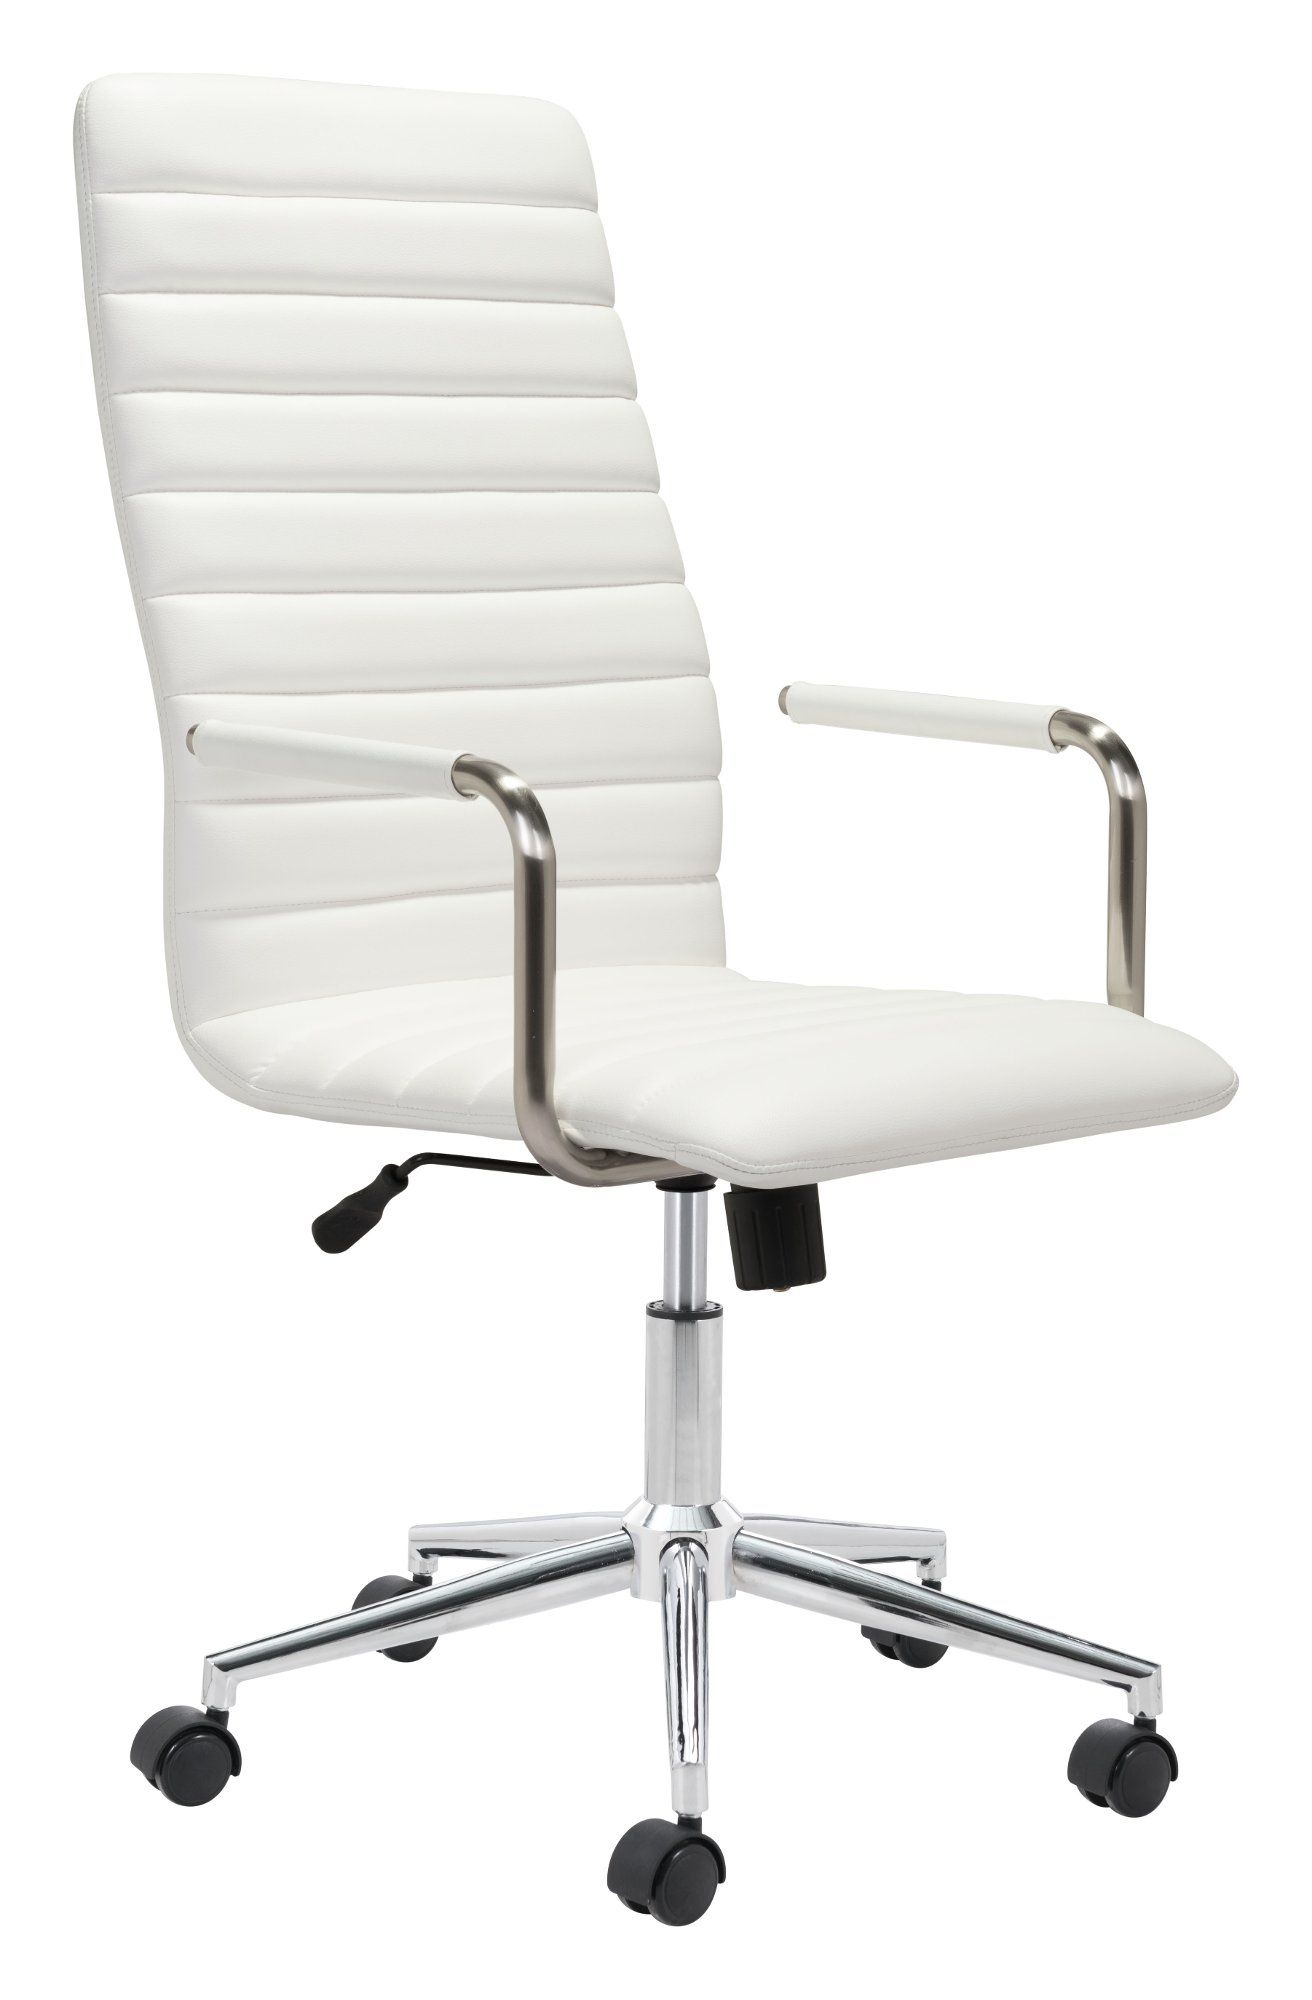 Miraculous High Back White Office Chair Pivot Products In 2019 Caraccident5 Cool Chair Designs And Ideas Caraccident5Info